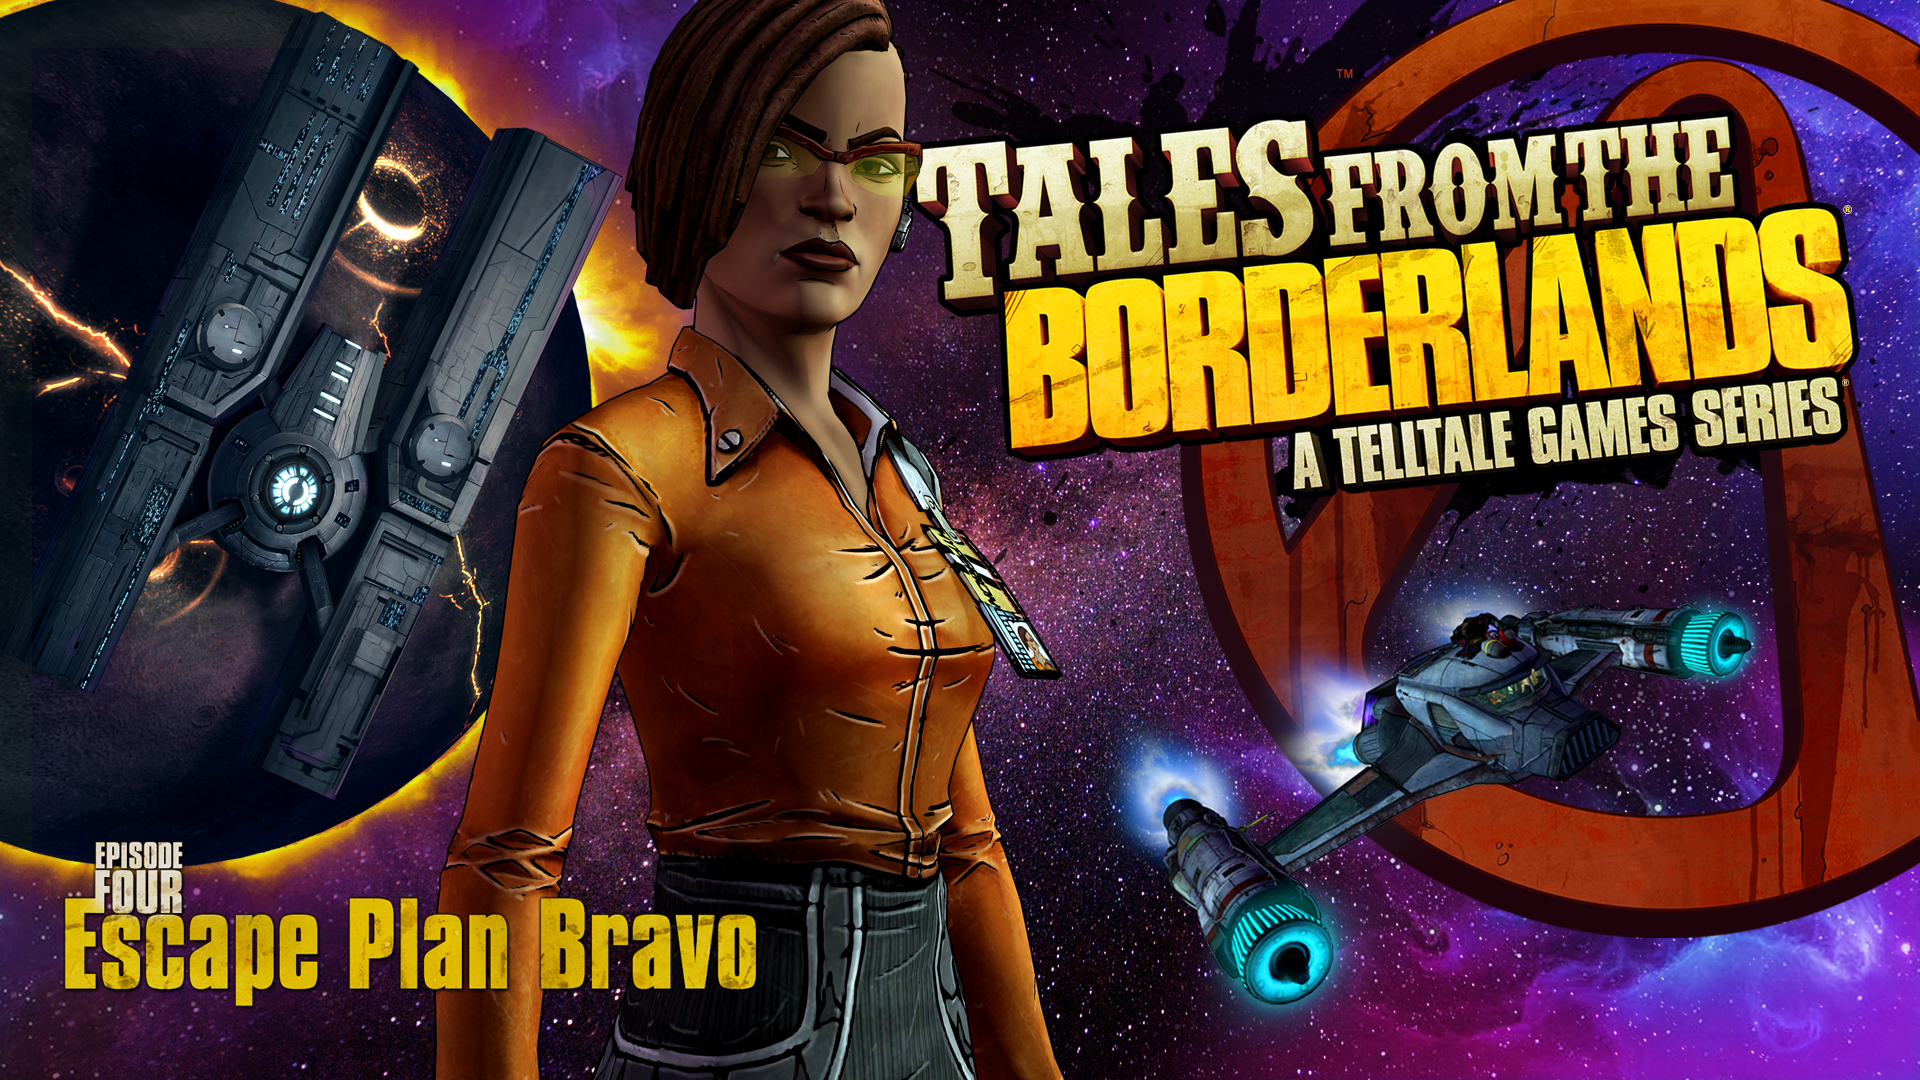 Tales from the borderlands ep 4 1